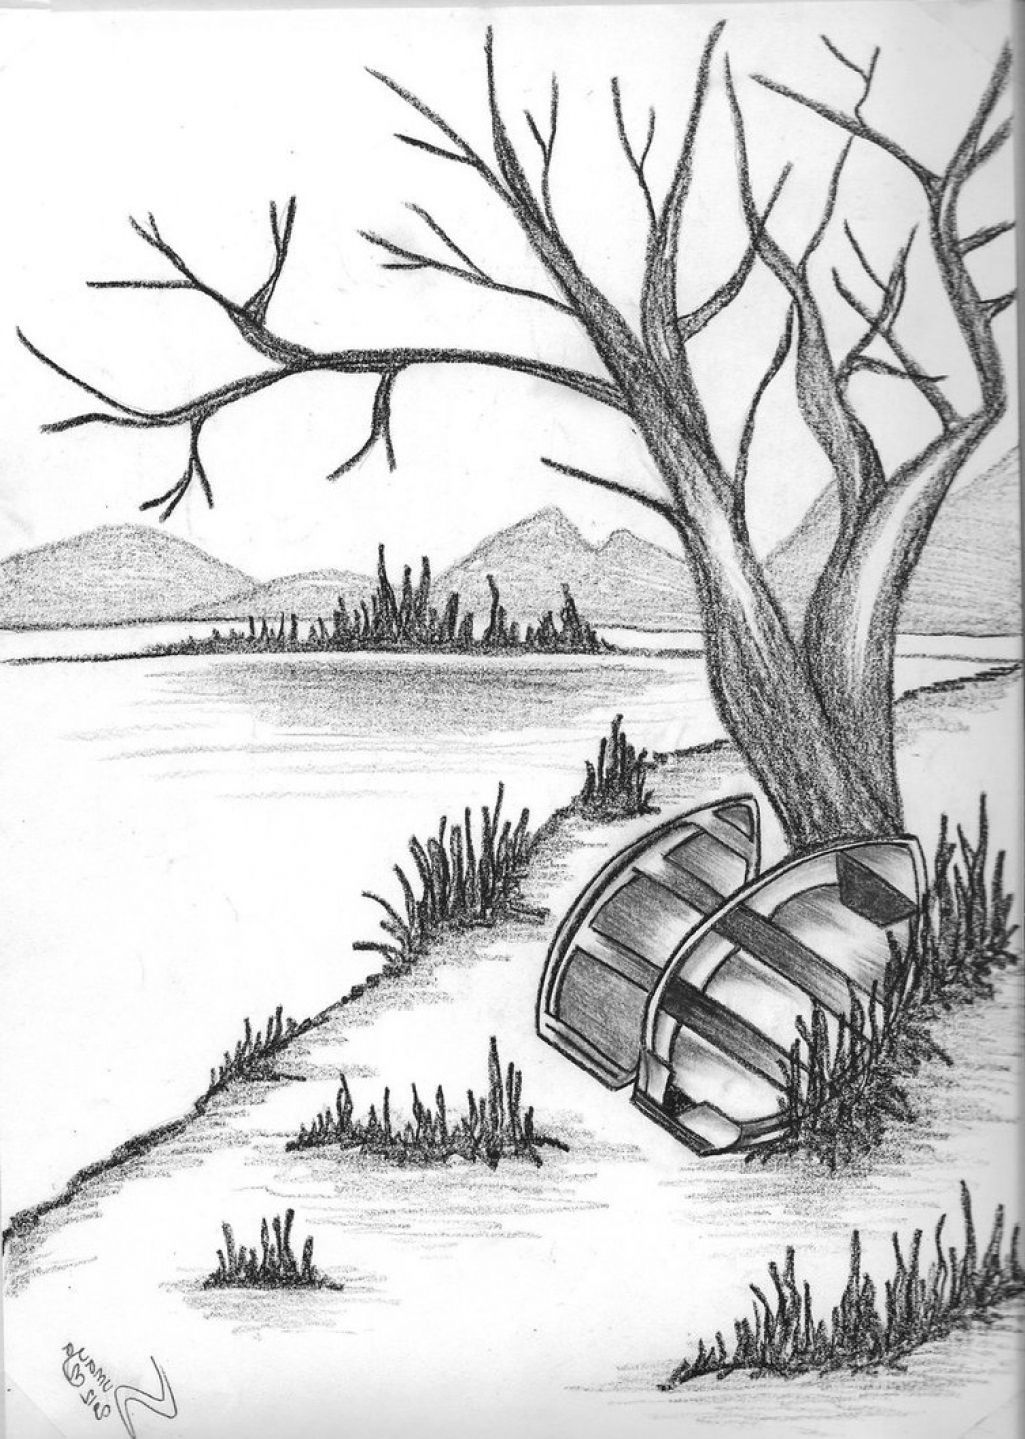 medium resolution of pencil drawing of natural scenery simple pencil drawings nature pictures of drawing sketch pencil